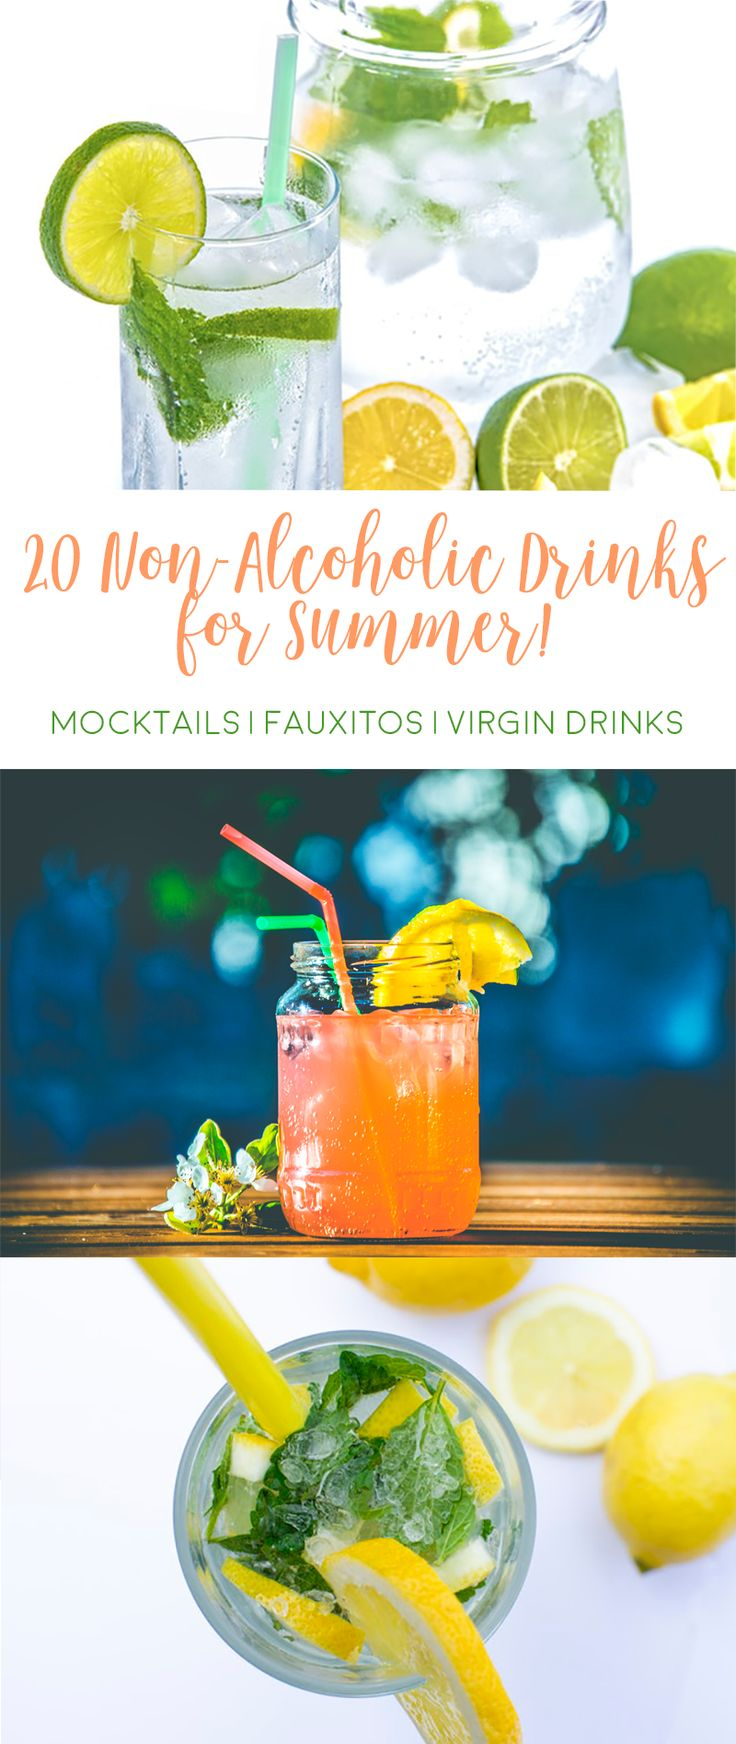 20 Non-Alcoholic Drinks for Summer